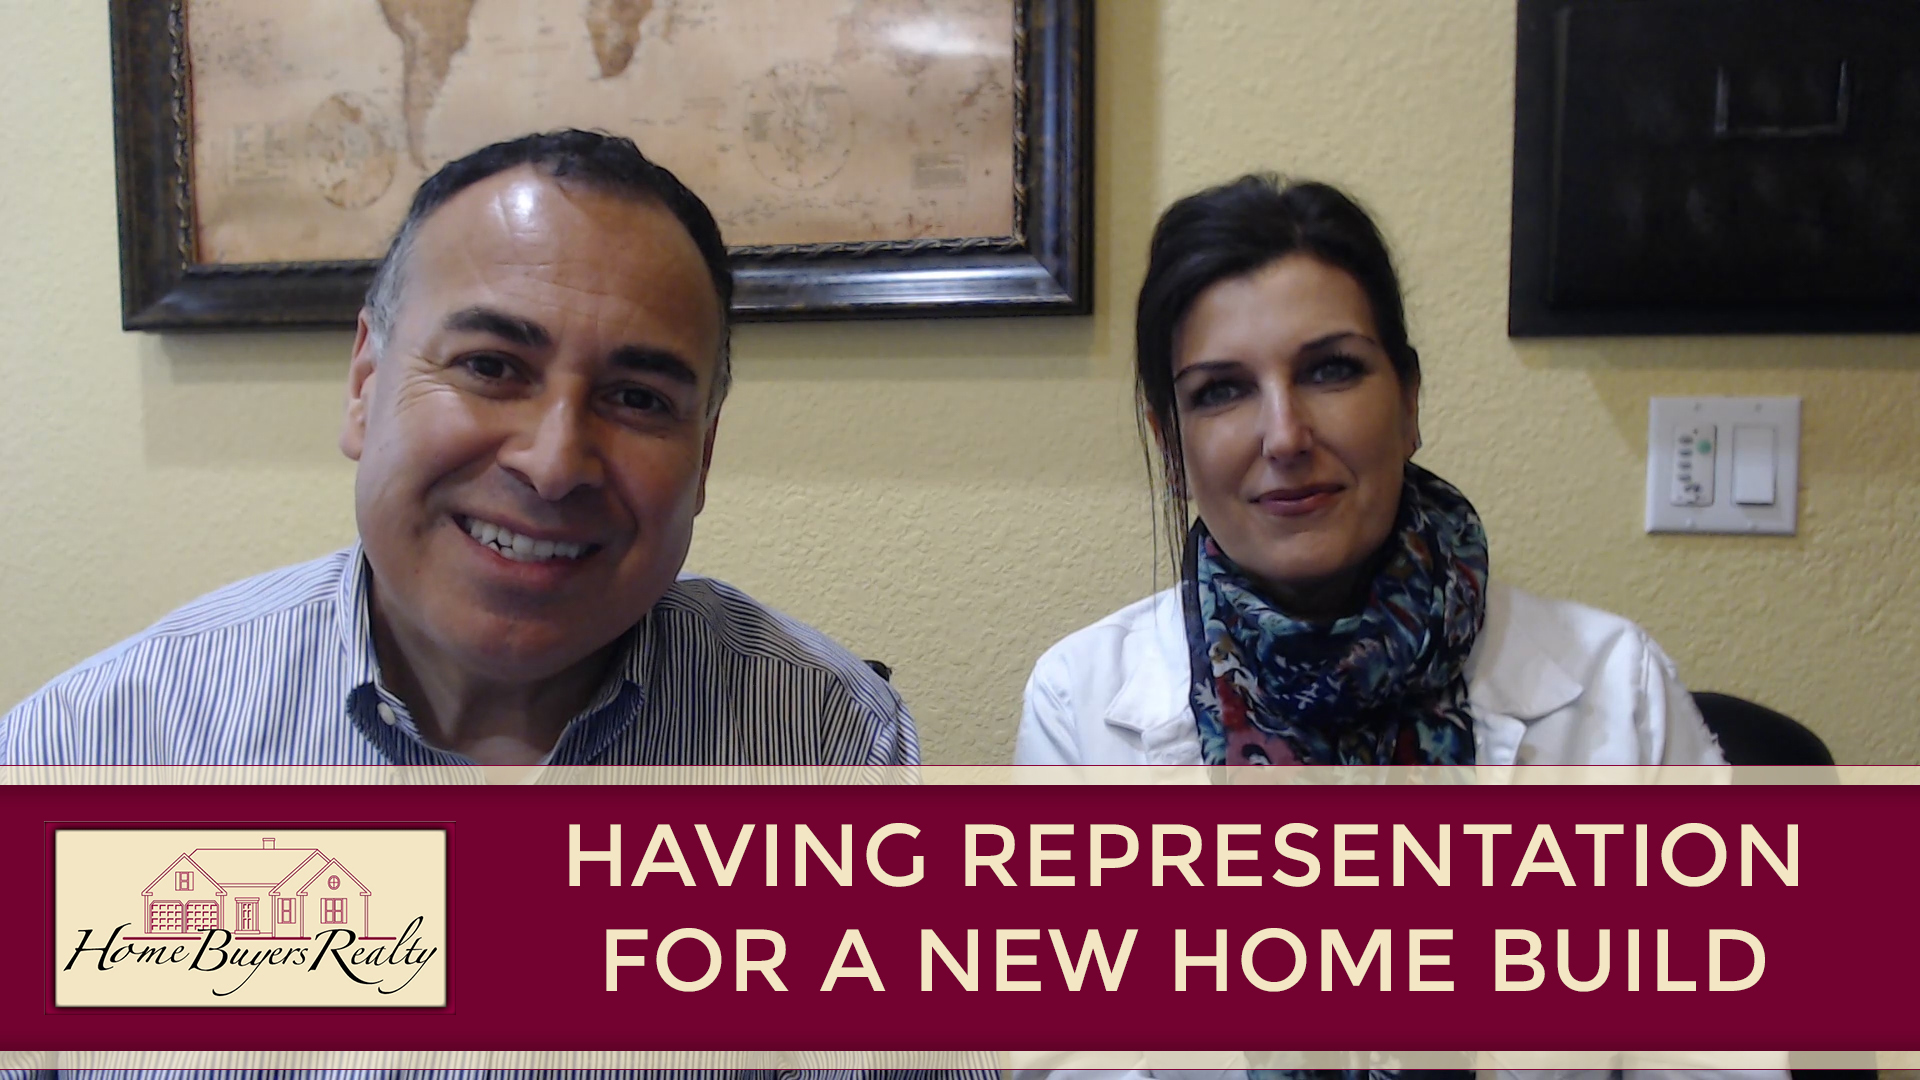 Meeting With a New Home Builder? Bring an Agent Along